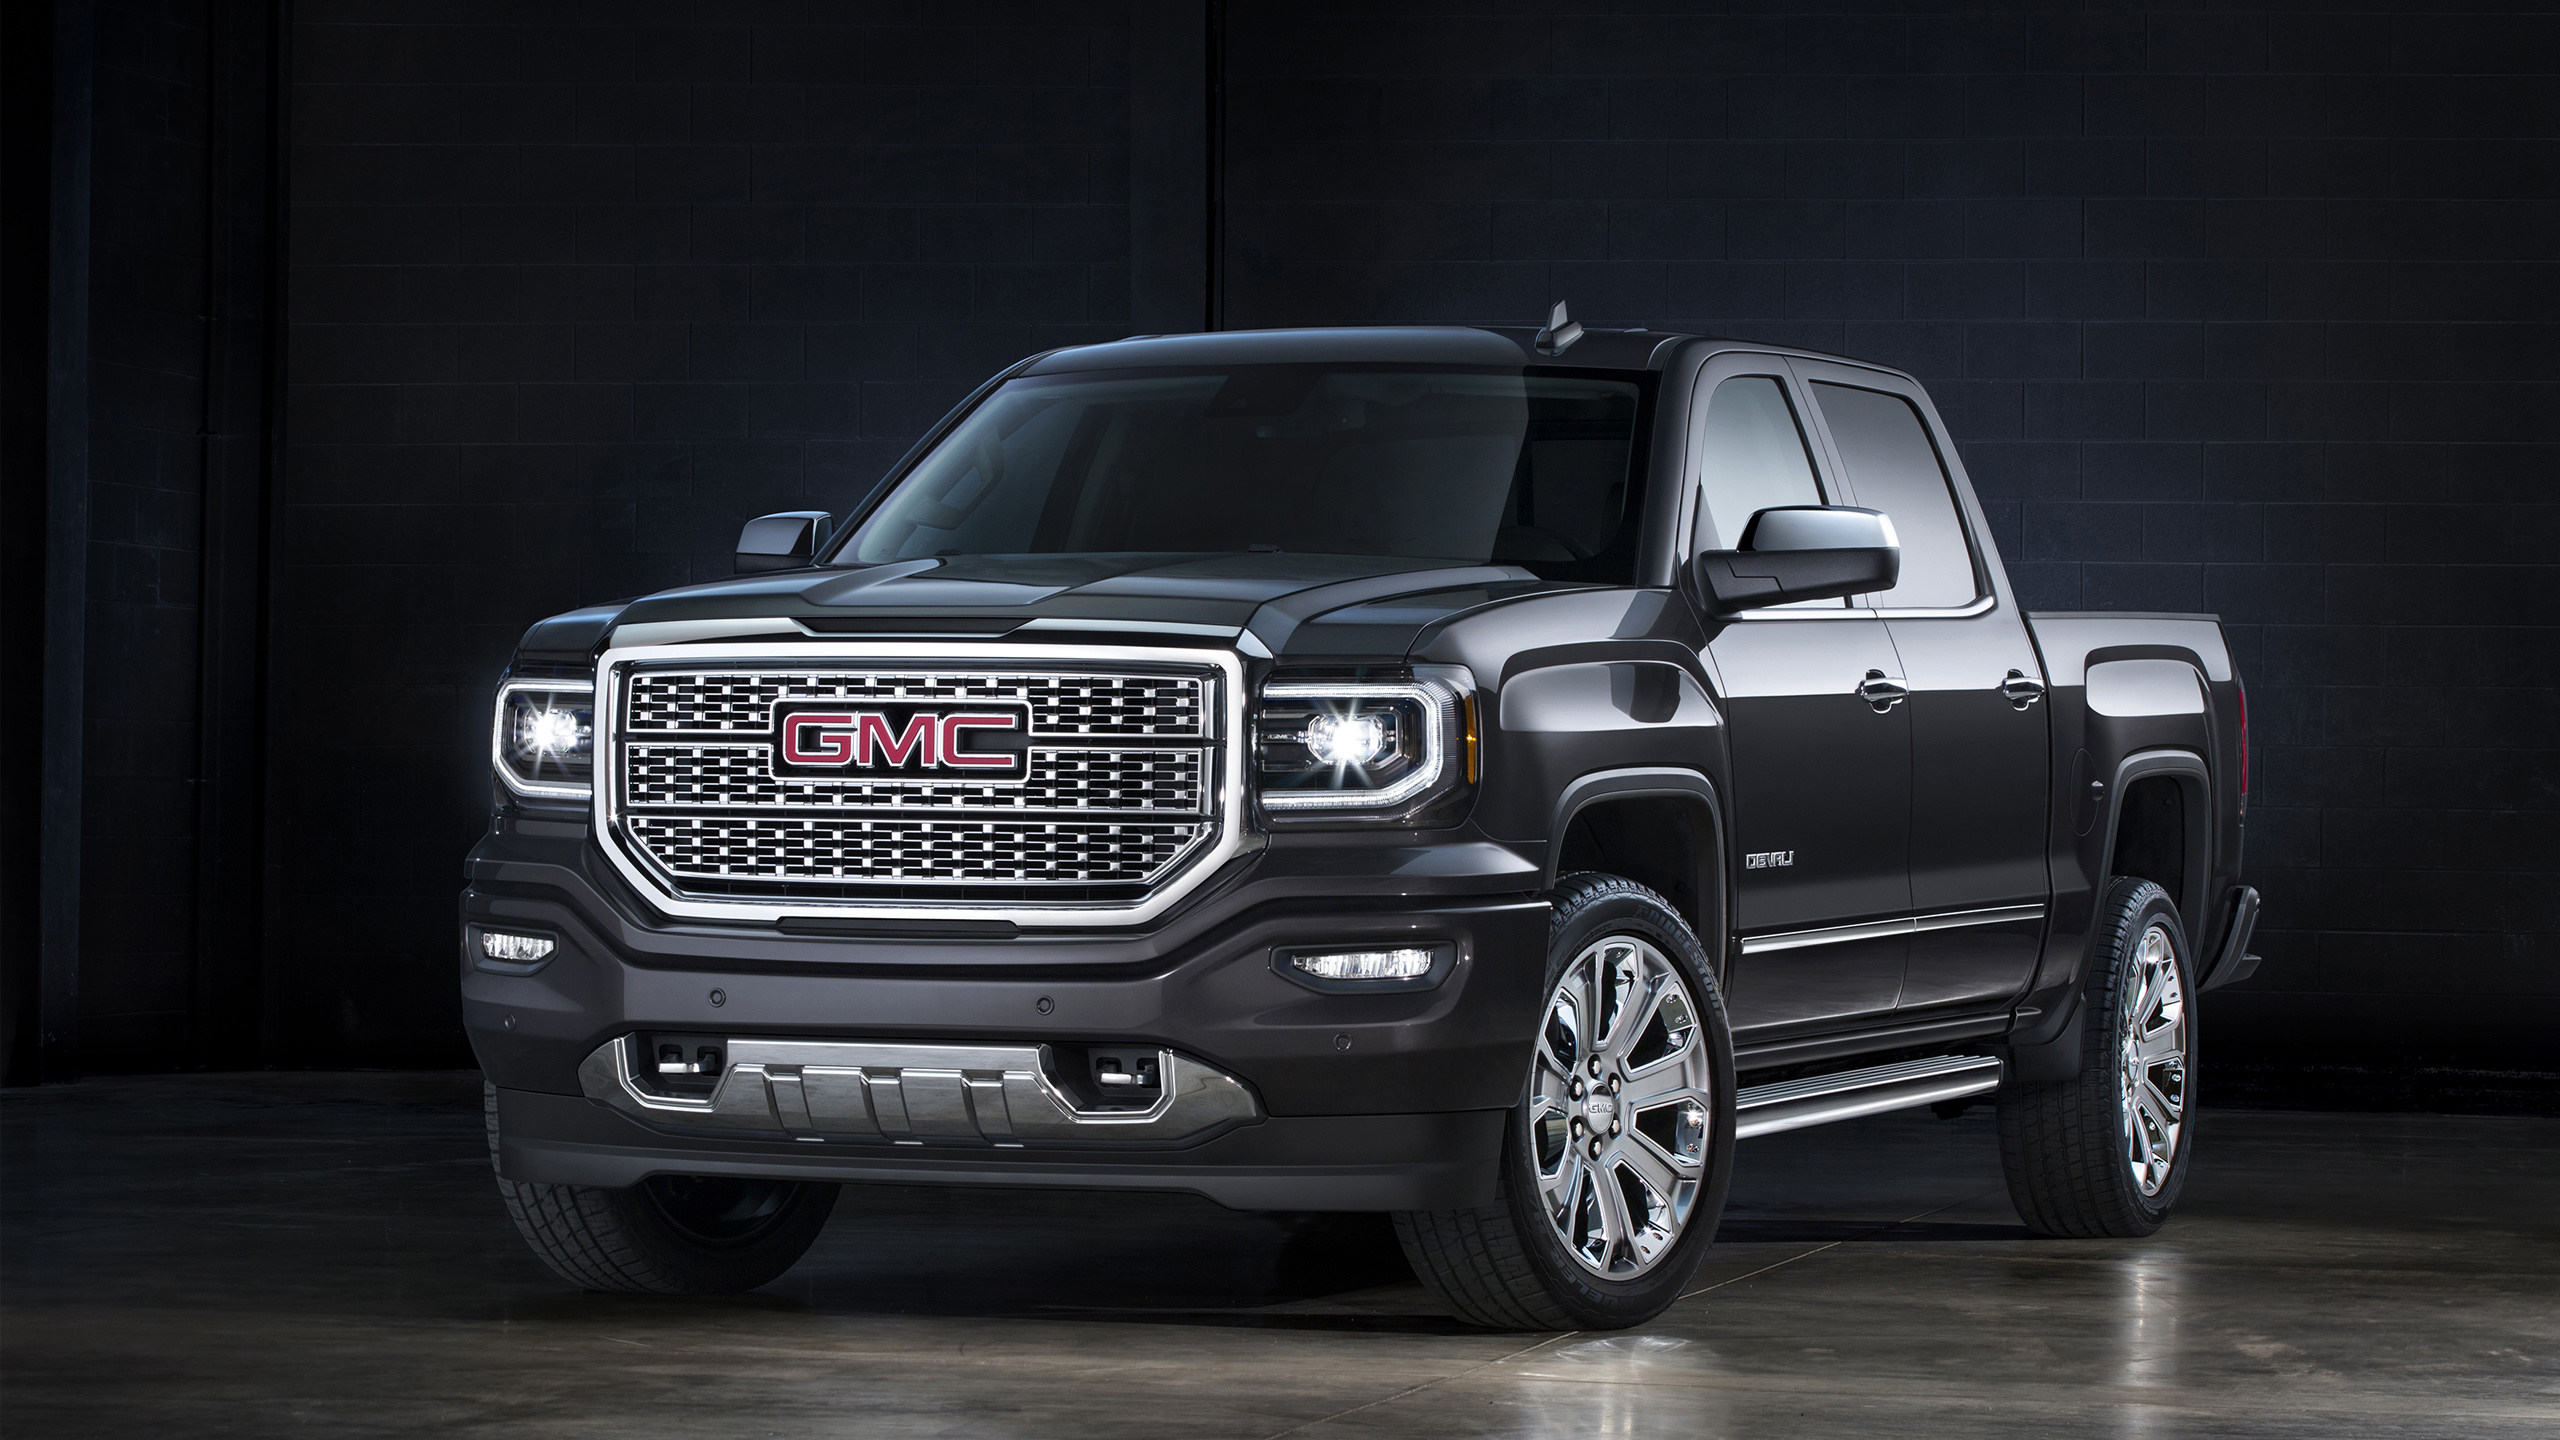 2016 gmc sierra denali wallpaper hd car wallpapers id. Black Bedroom Furniture Sets. Home Design Ideas